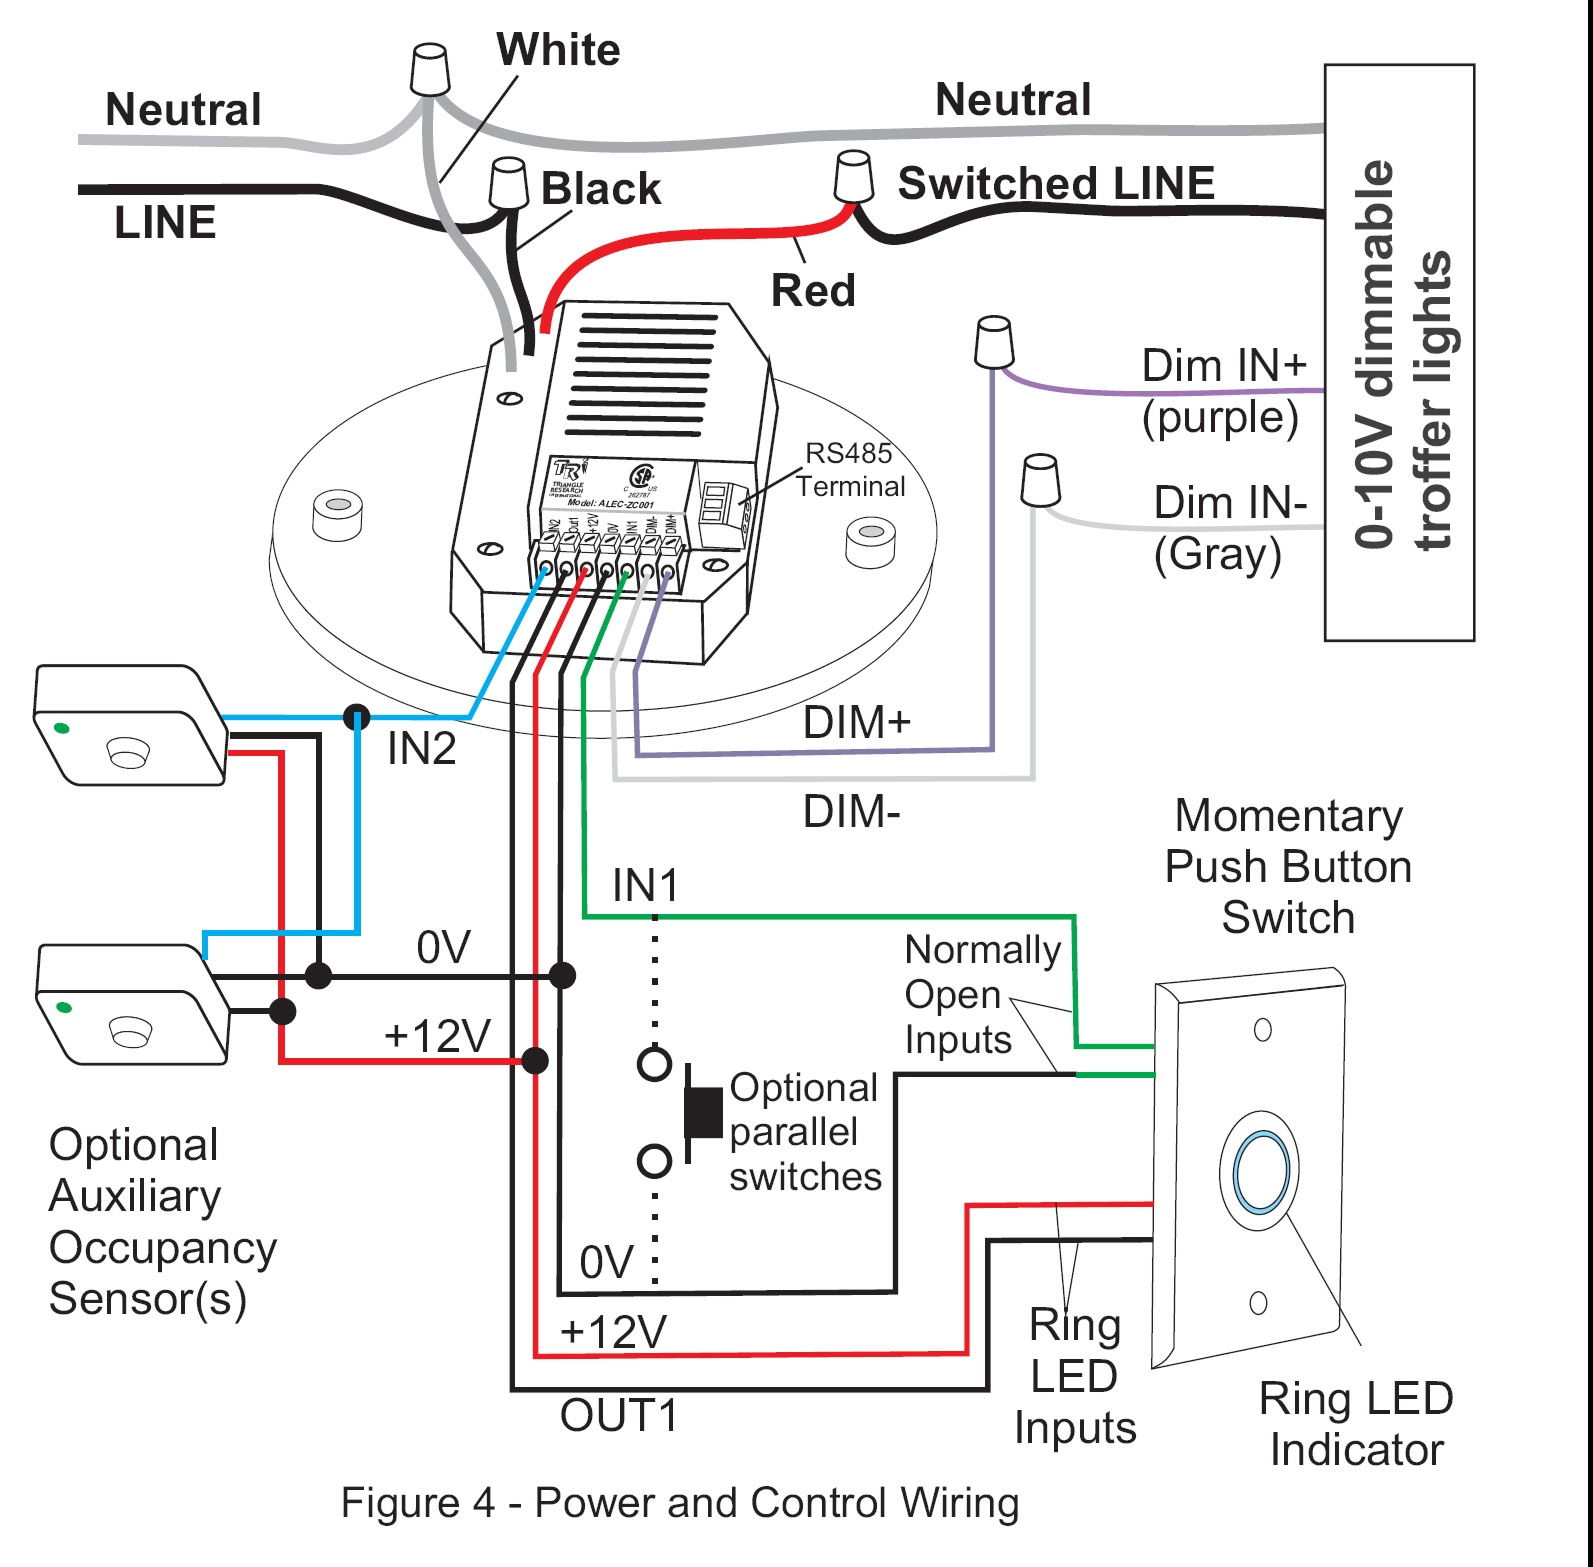 ZC001 Installation Guide on advance transformer wiring diagram, led light fixture wiring diagram, ballast wiring diagram, photocell wiring diagram, dali wiring diagram, halo lamp wiring diagram, dmx wiring diagram, recessed lighting wiring diagram, bodine electric wiring diagram, emergency lighting wiring diagram, daylight harvesting wiring diagram,